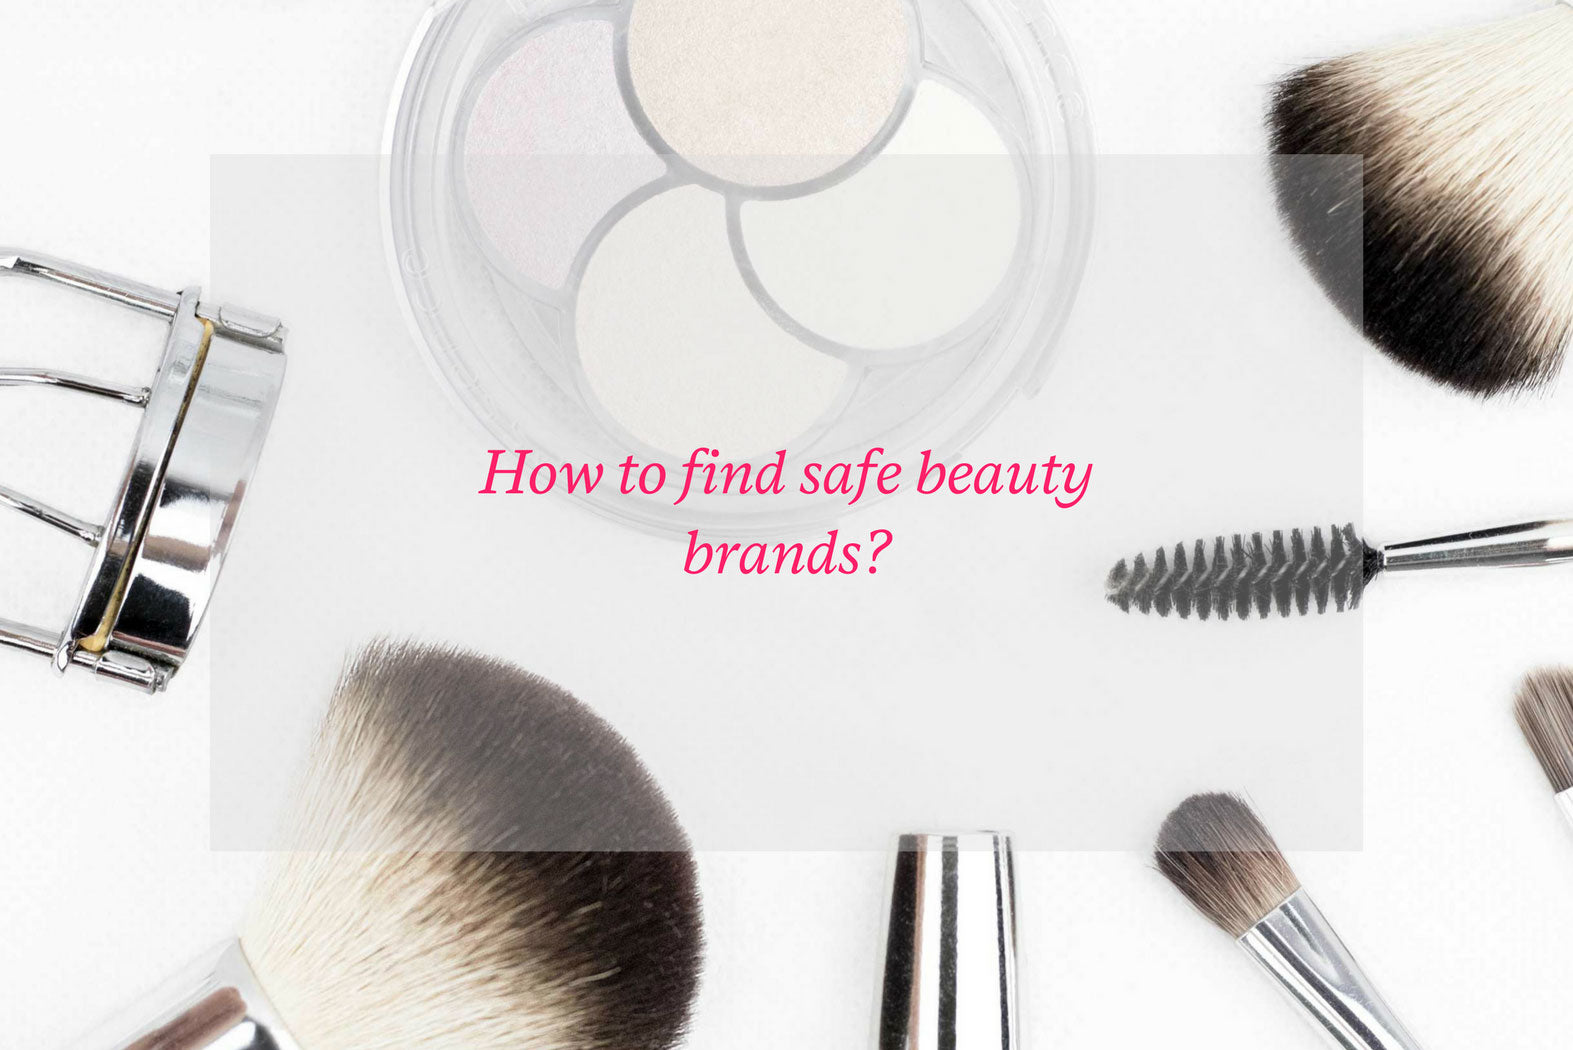 How to find safe beauty brands